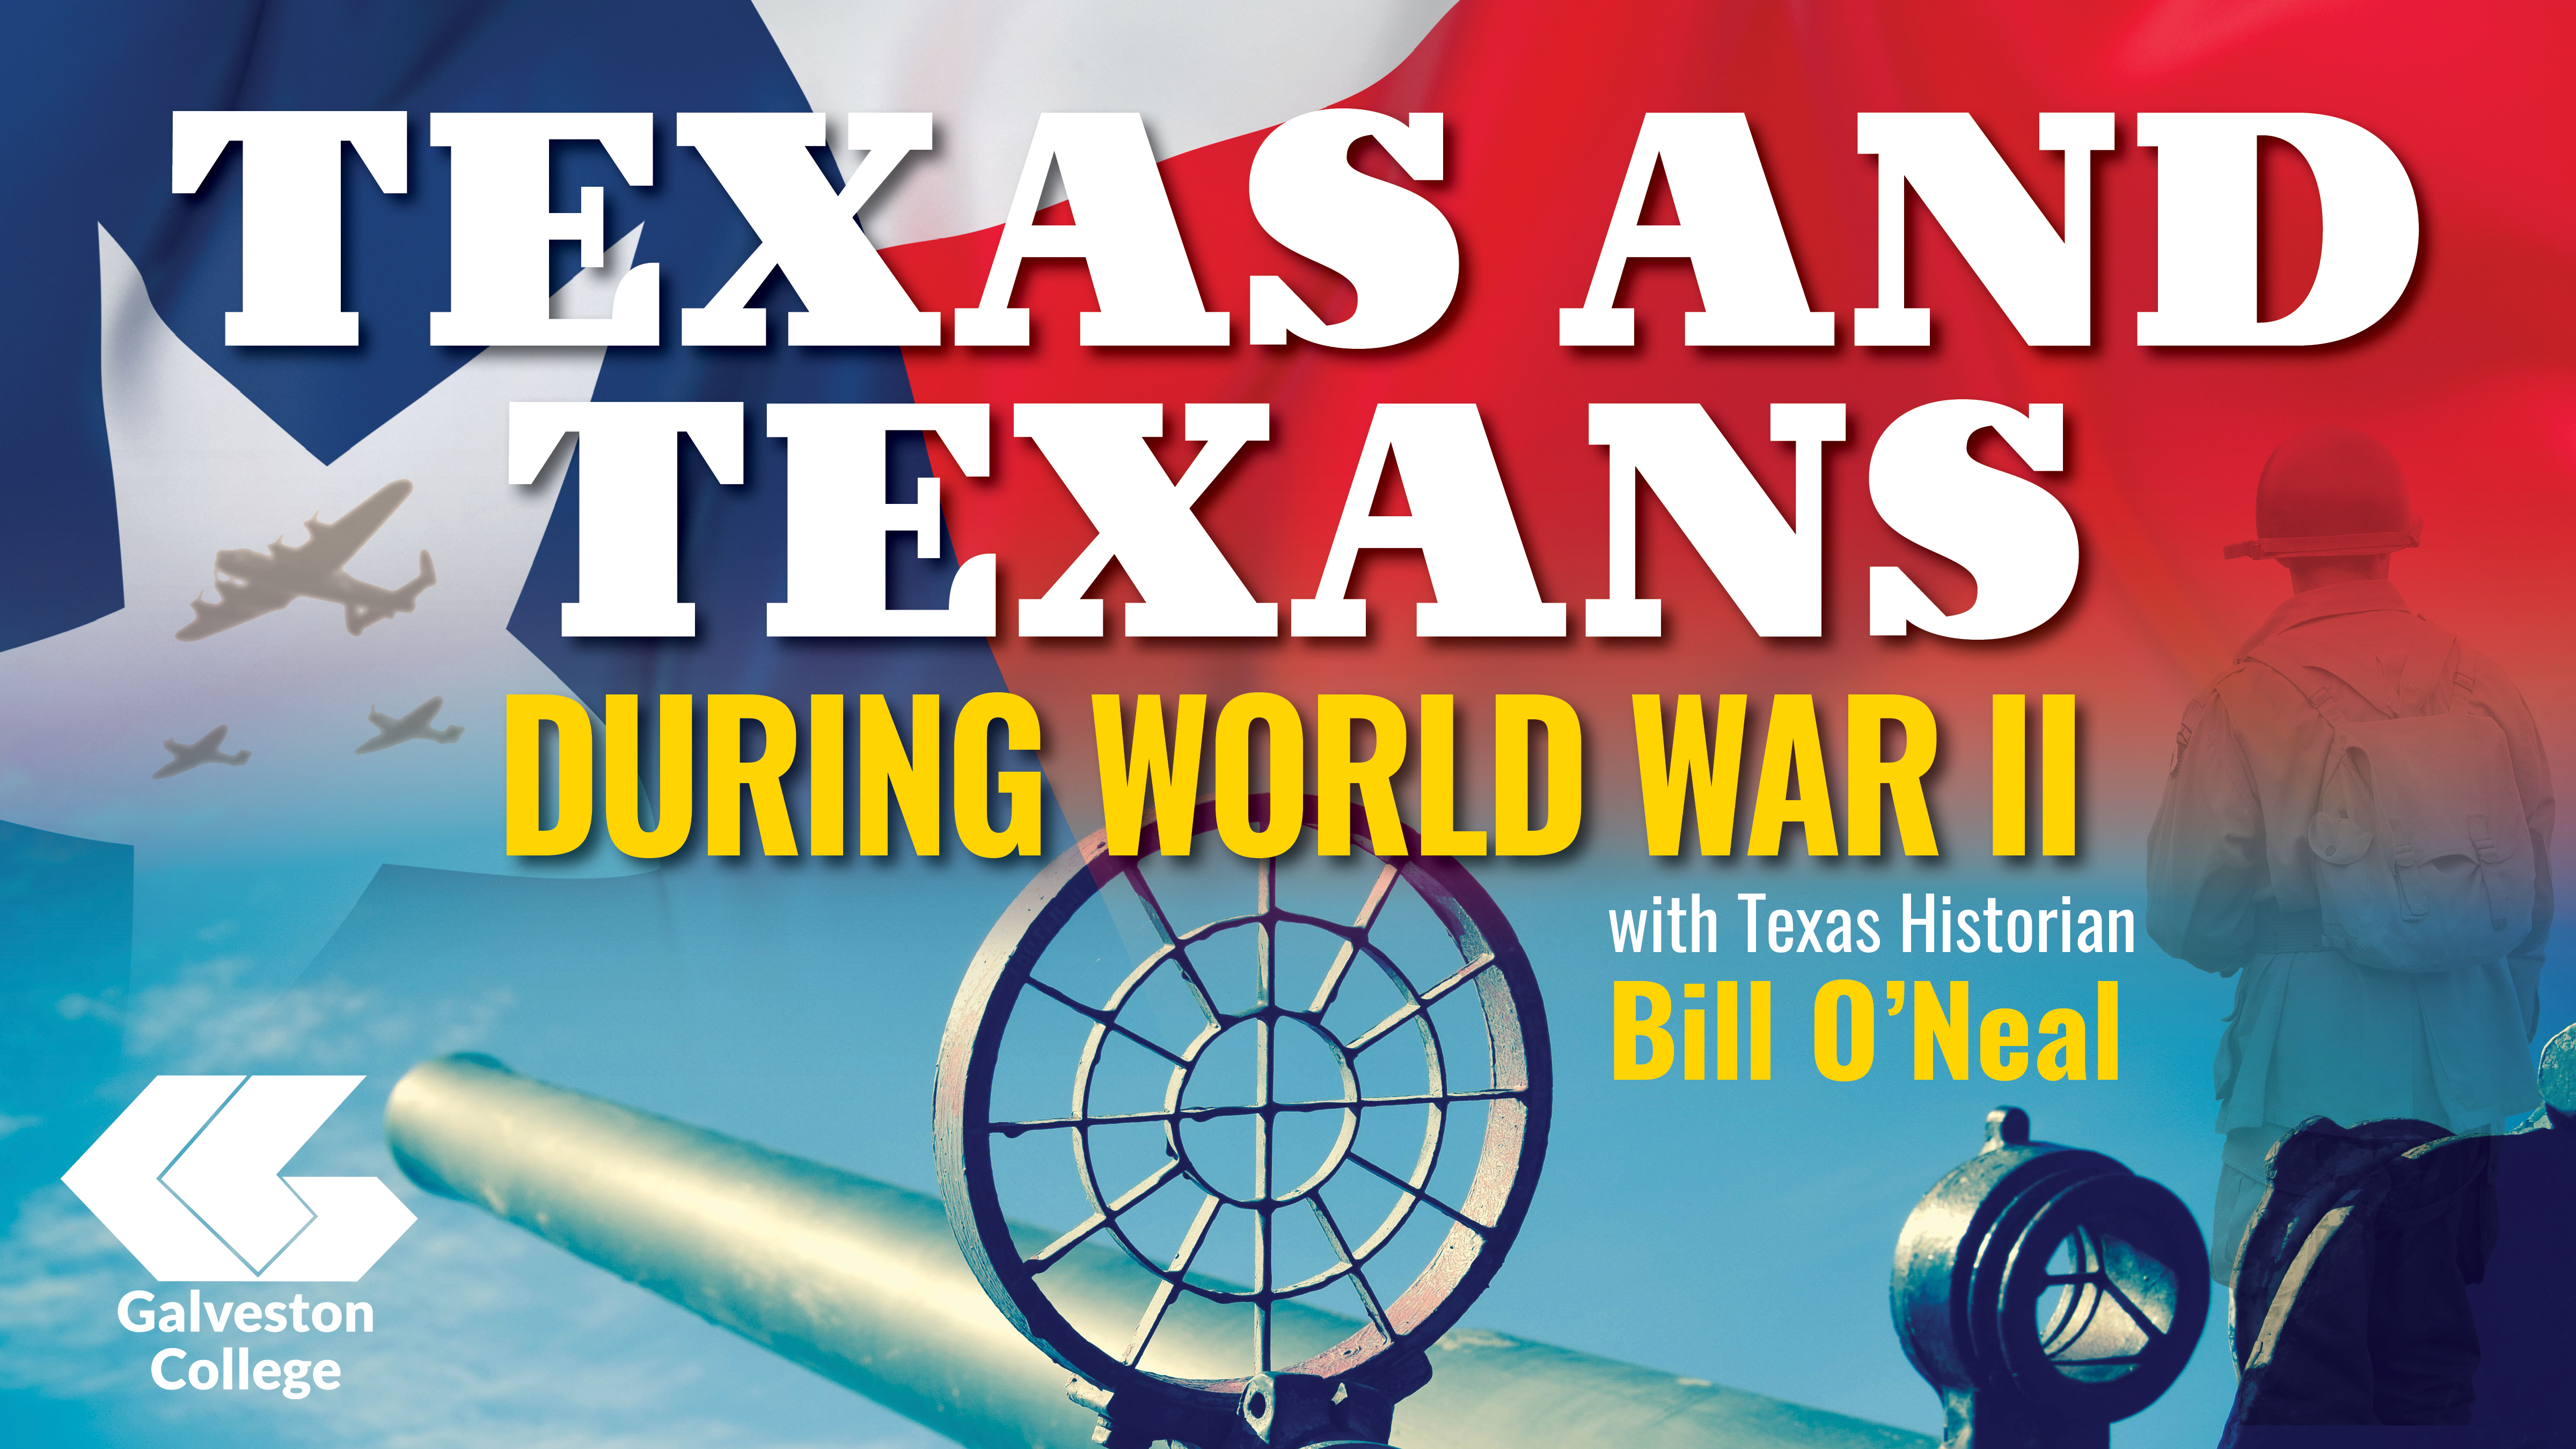 Texas and Texans During World War II